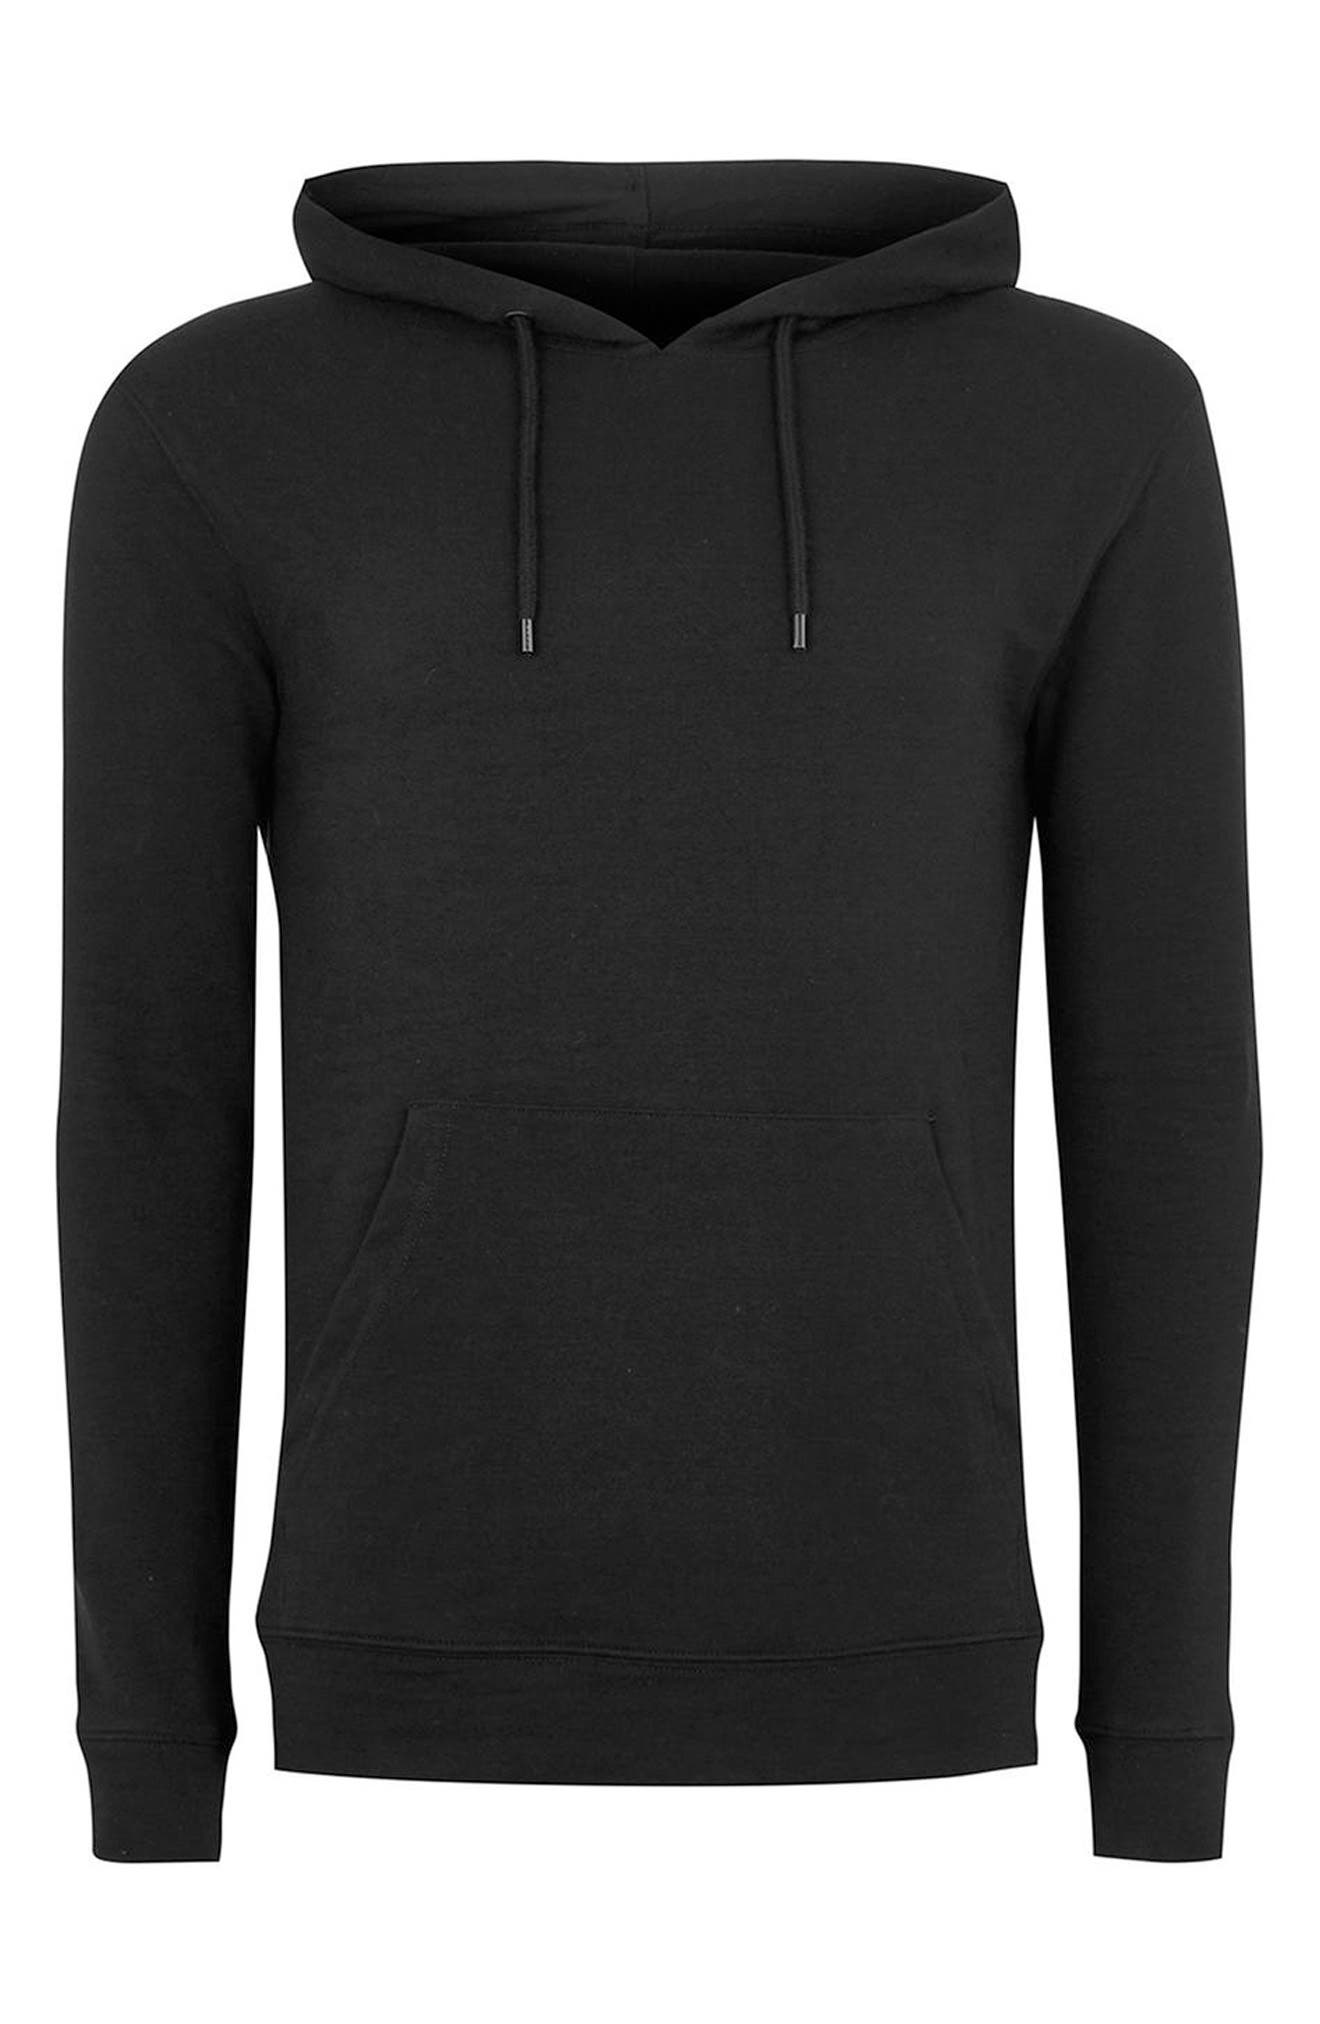 Ultra Muscle Fit Hoodie,                             Alternate thumbnail 10, color,